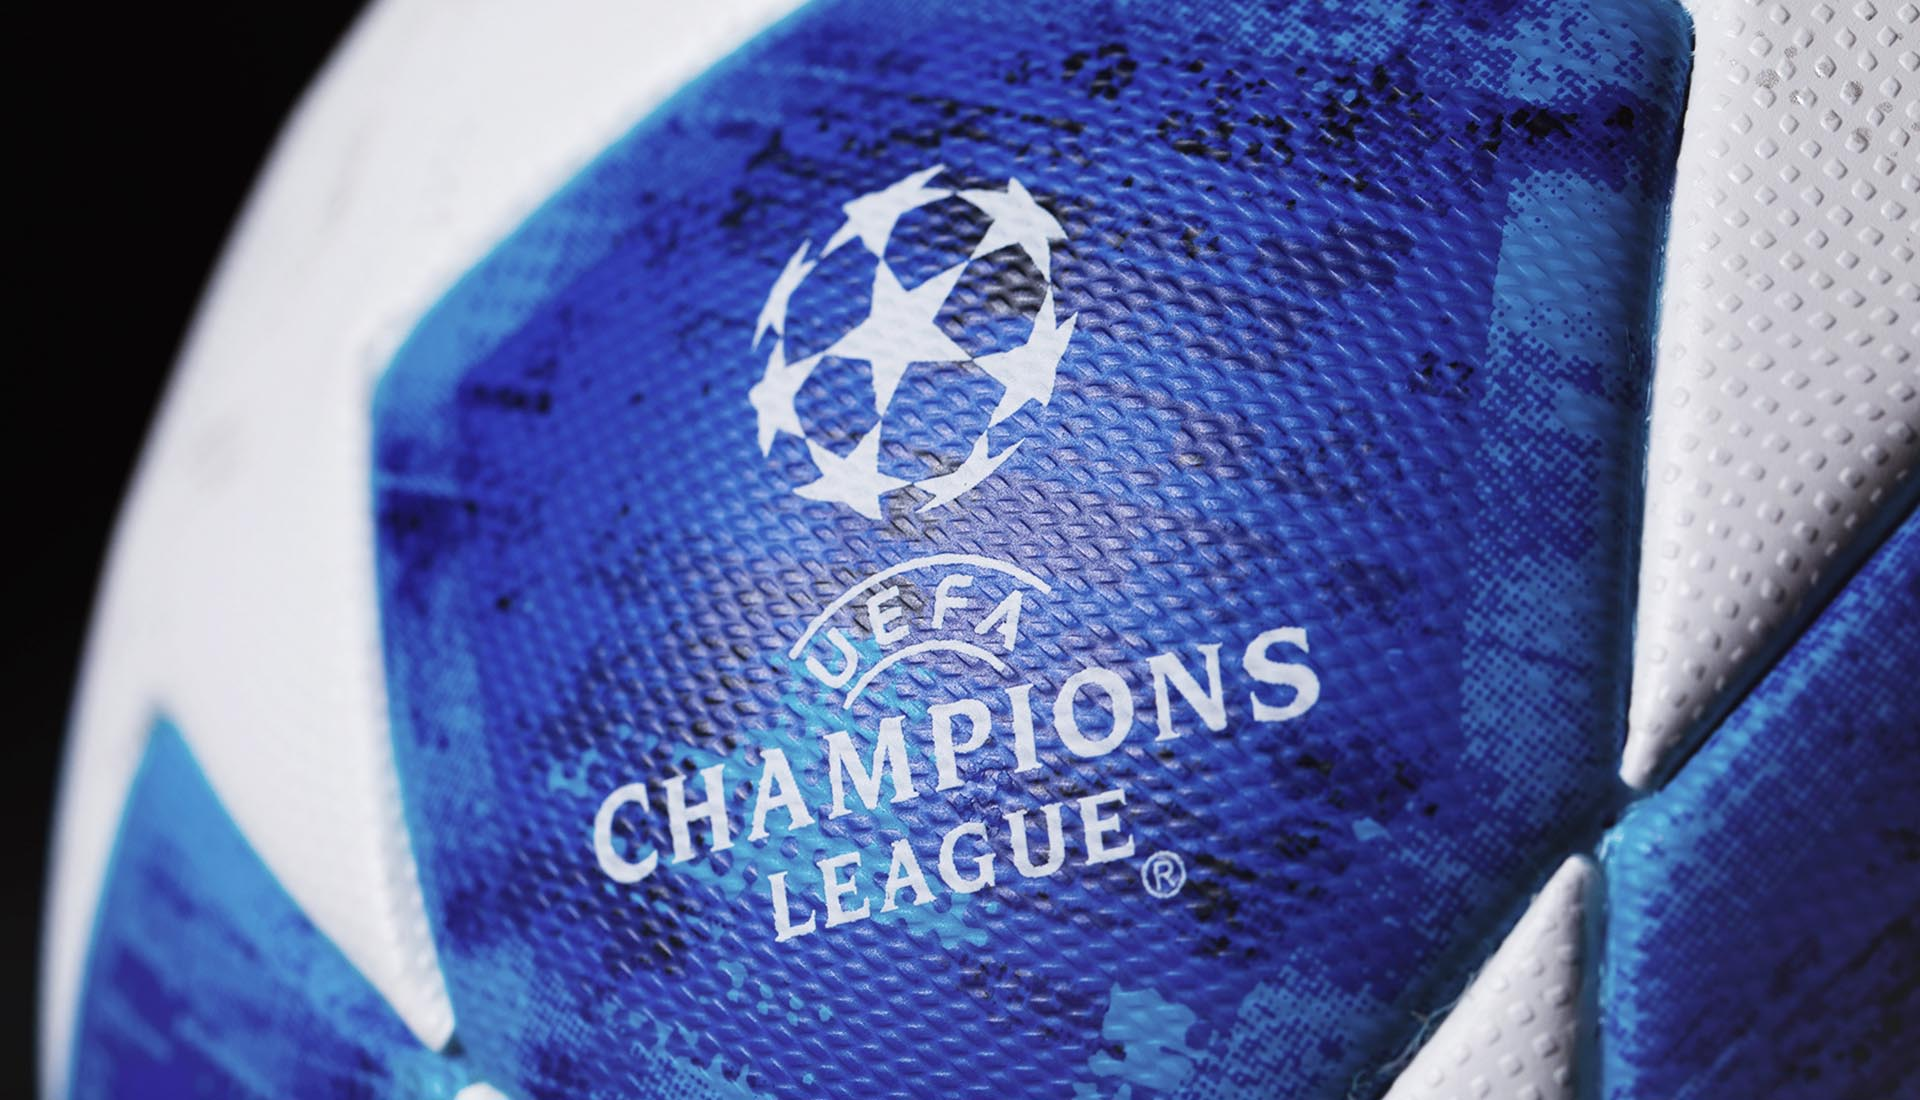 18-19-champs-league-ball-adidas_0002_ucl_omb_16x9_06